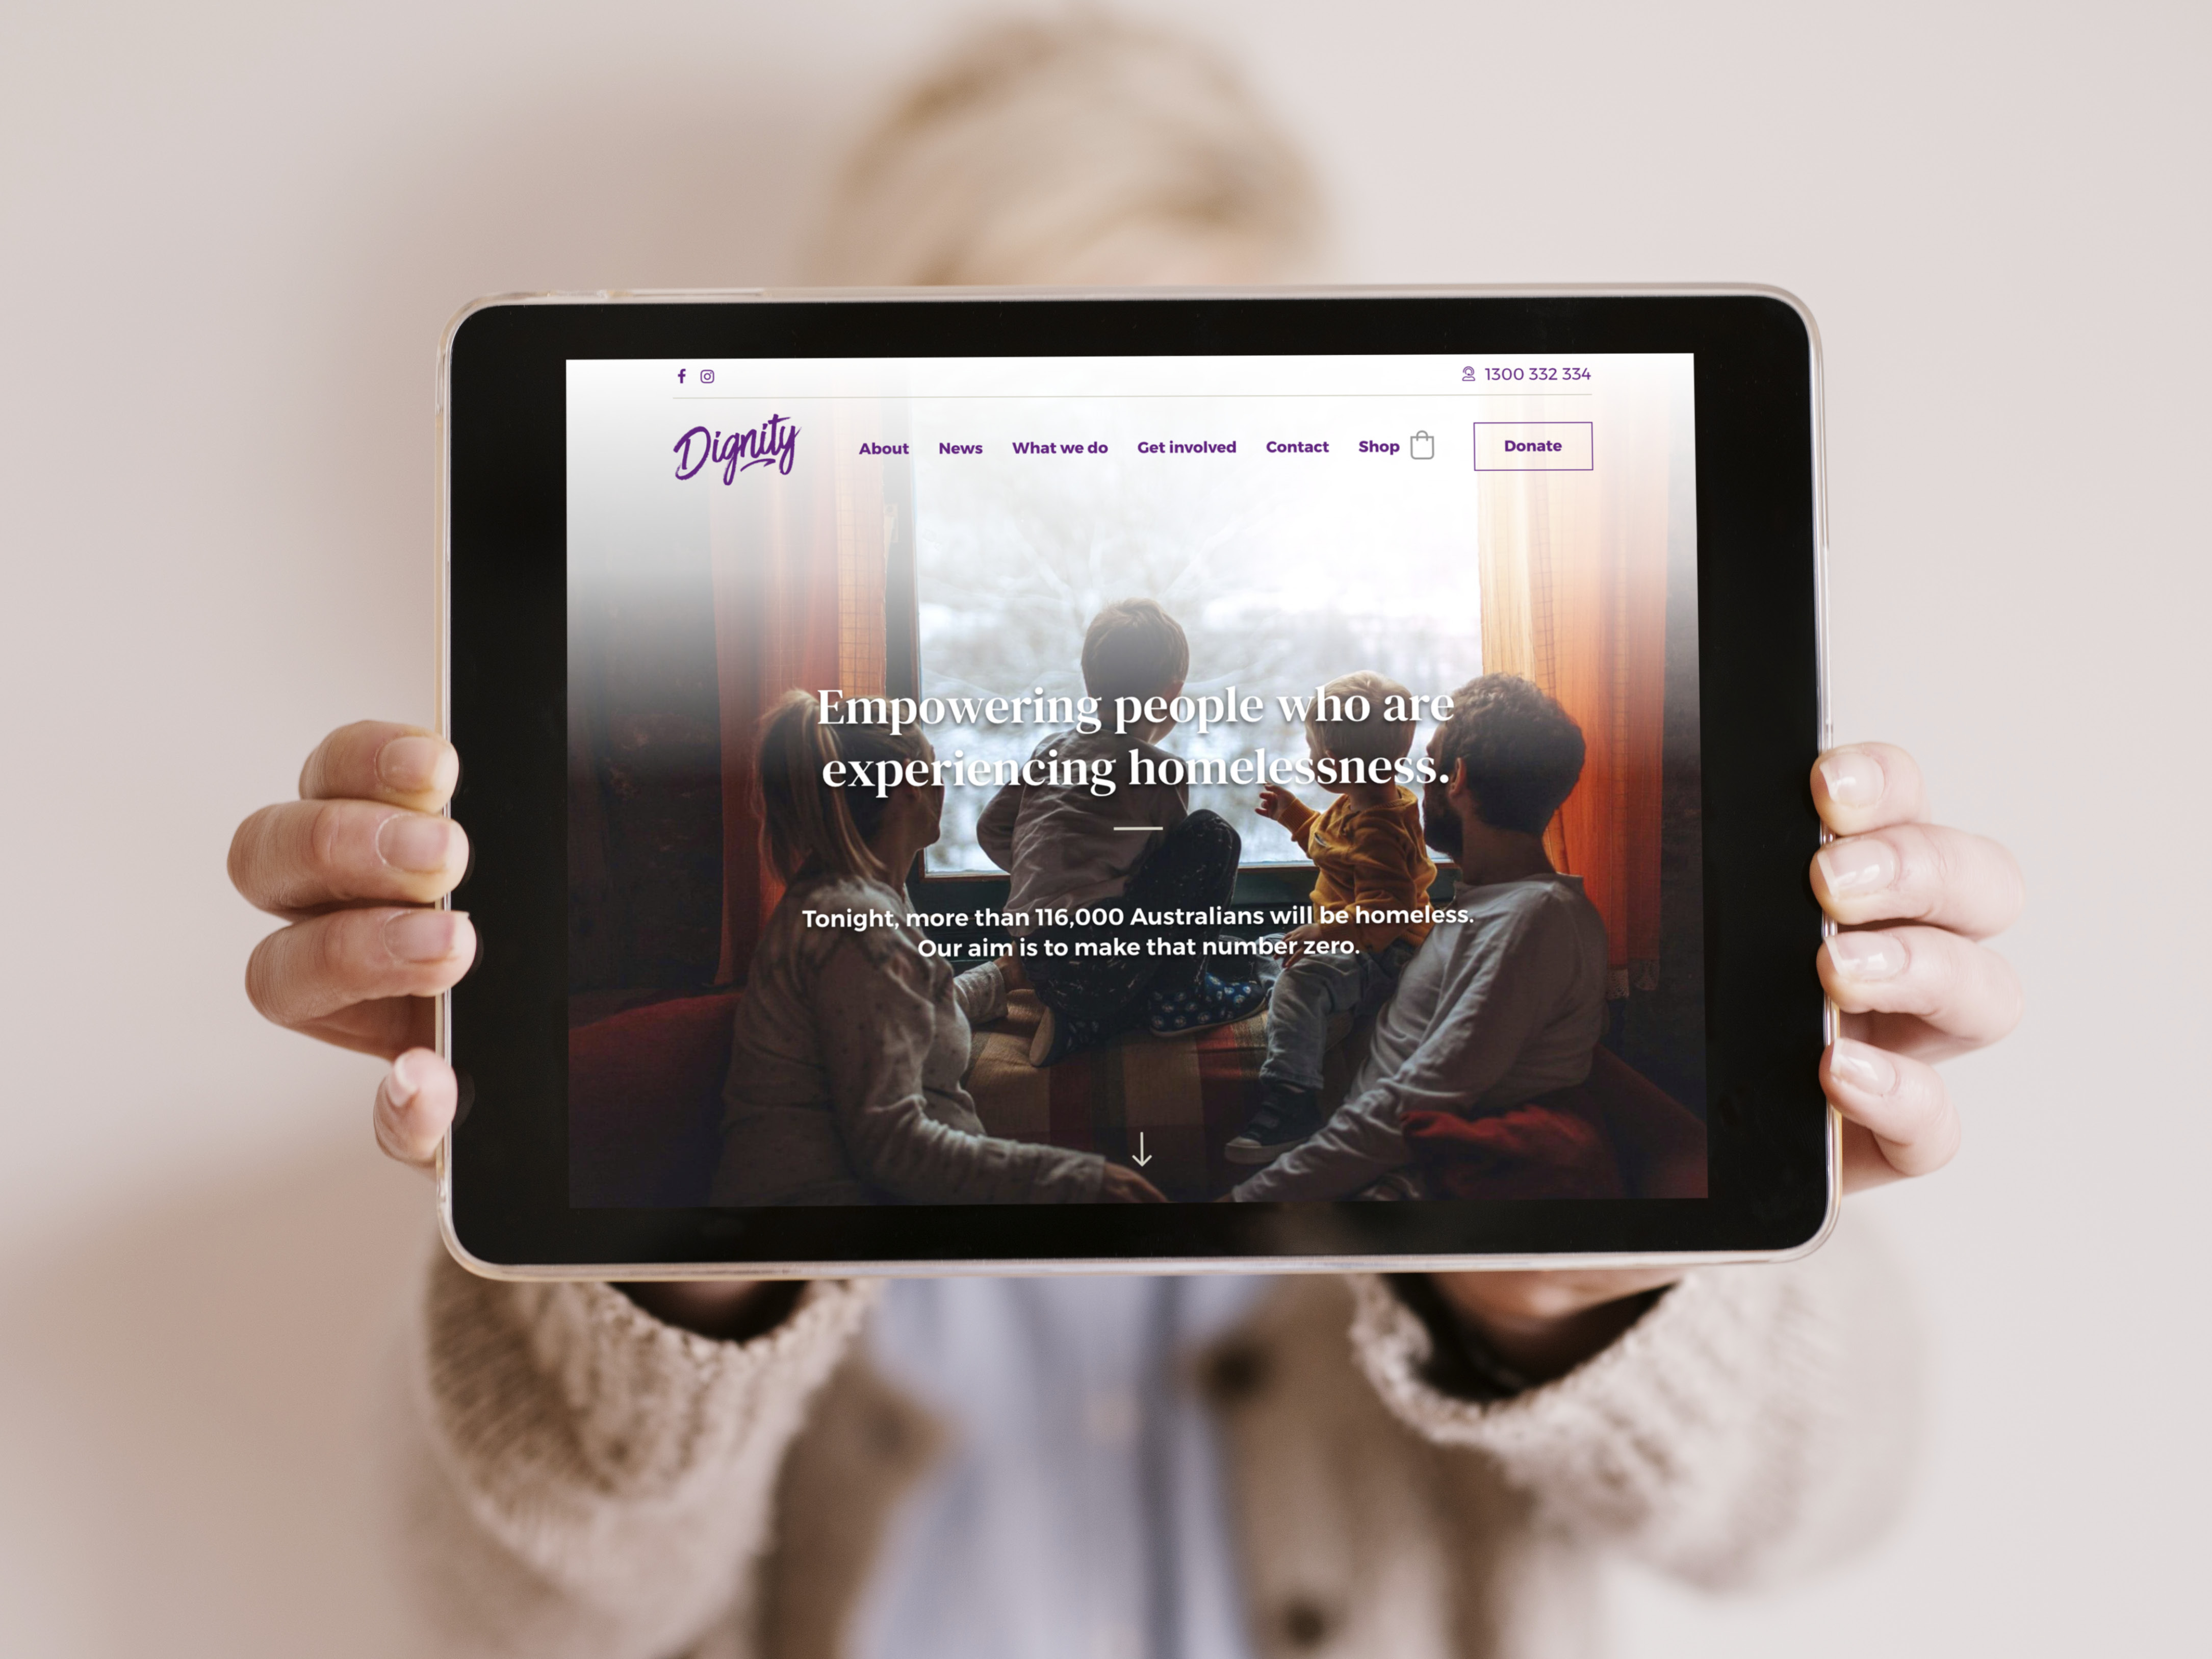 New Dignity website homepage on a tablet